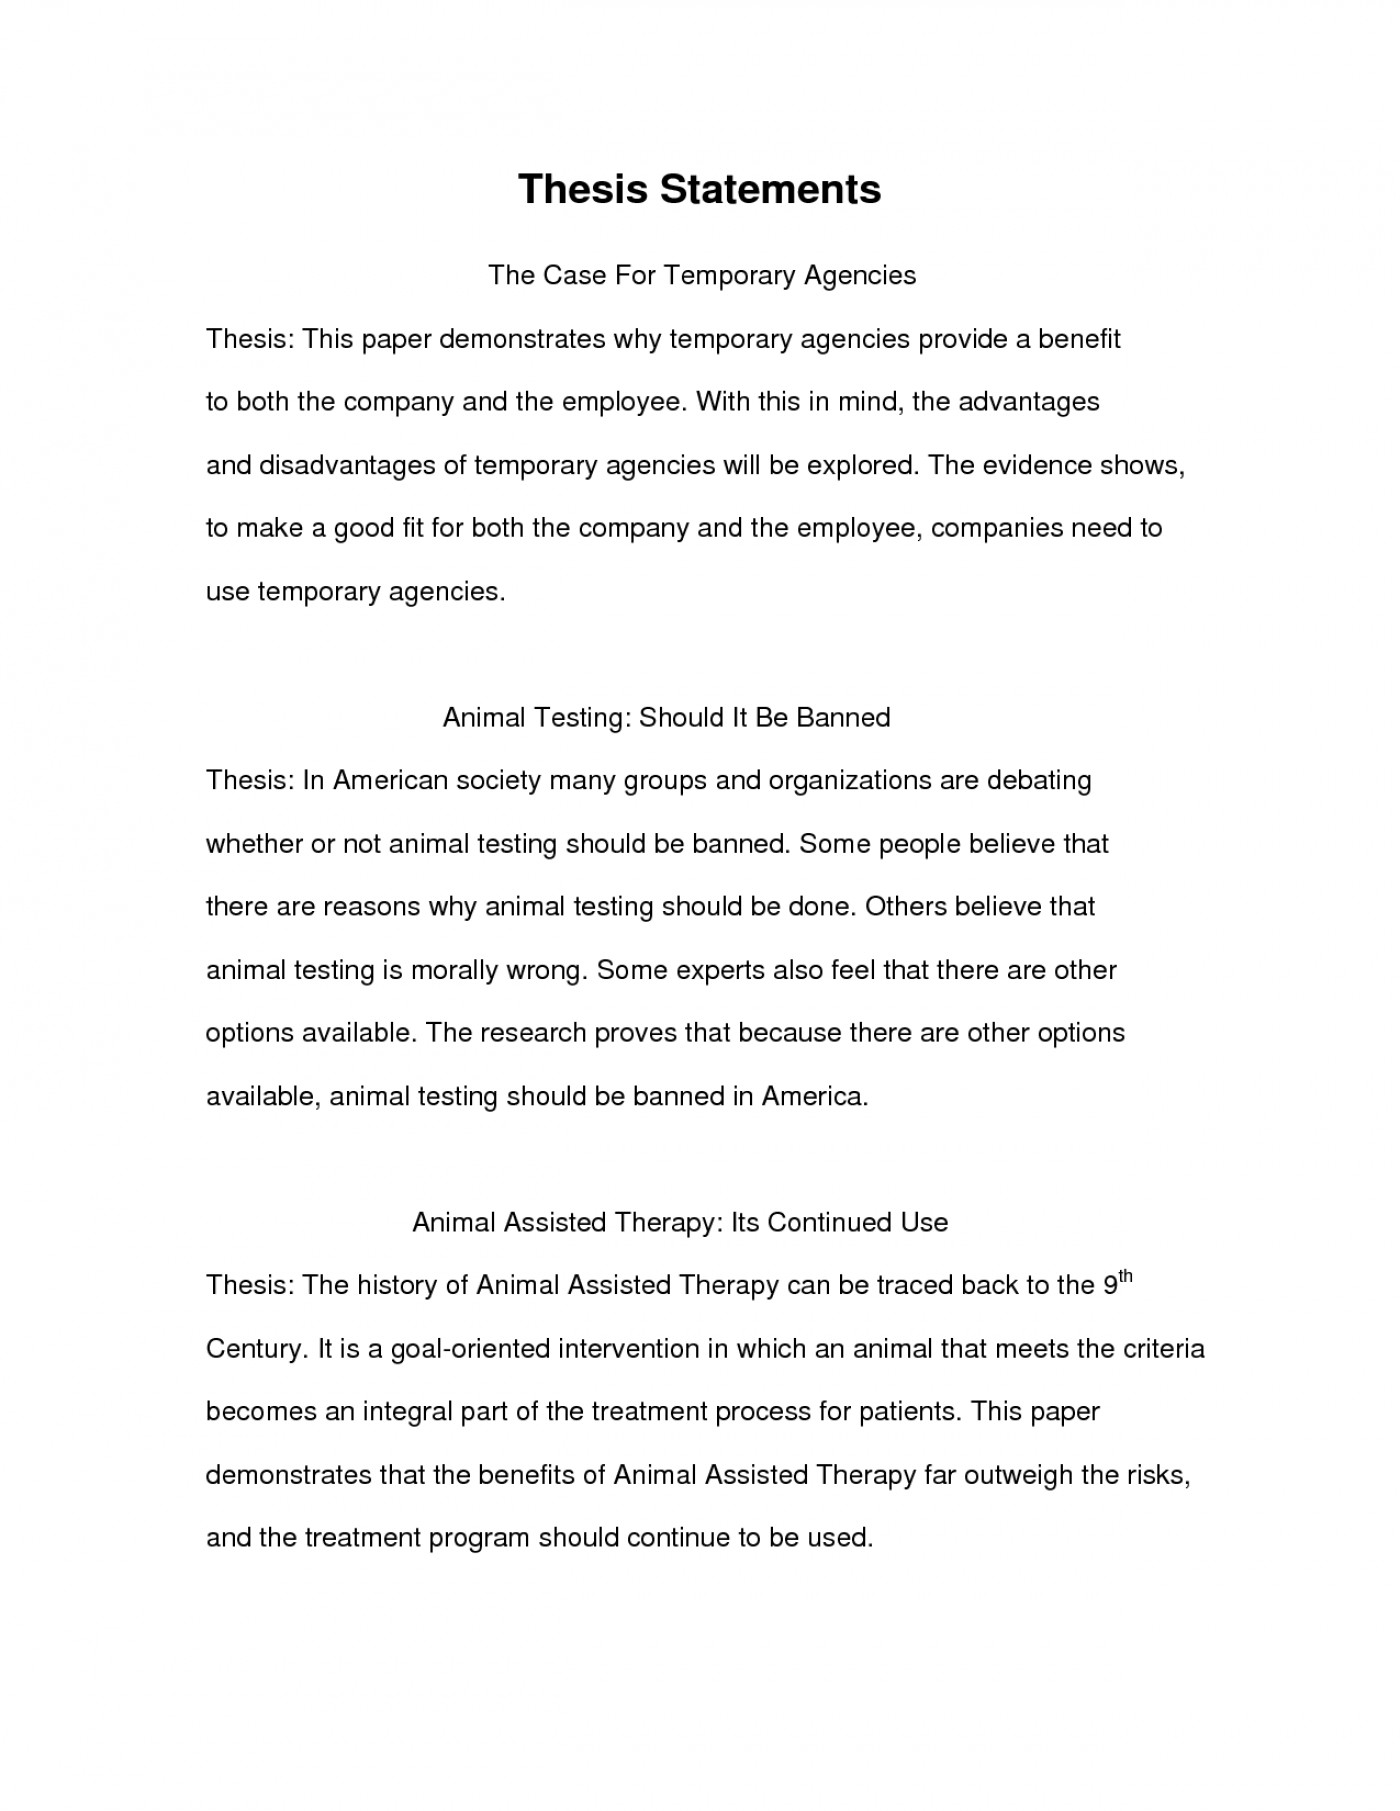 Proposal Essay Sample  Proposal Essay Topics Ideas also Examples Of Thesis Statements For Persuasive Essays  Example Essay Thesis Statement Examplesch Paper Of  How Do I Write A Thesis Statement For An Essay